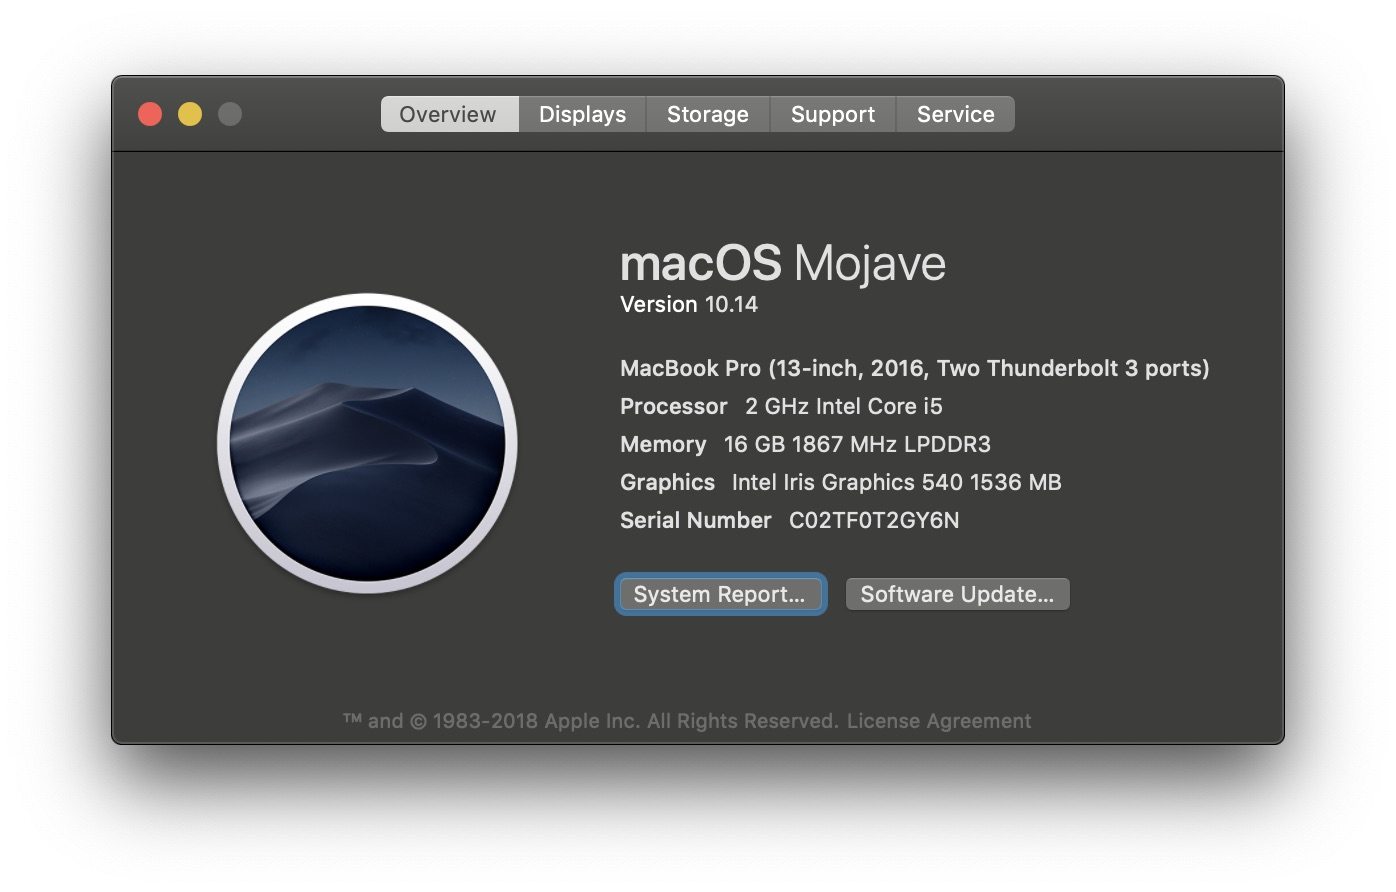 macos Mojave about this mac